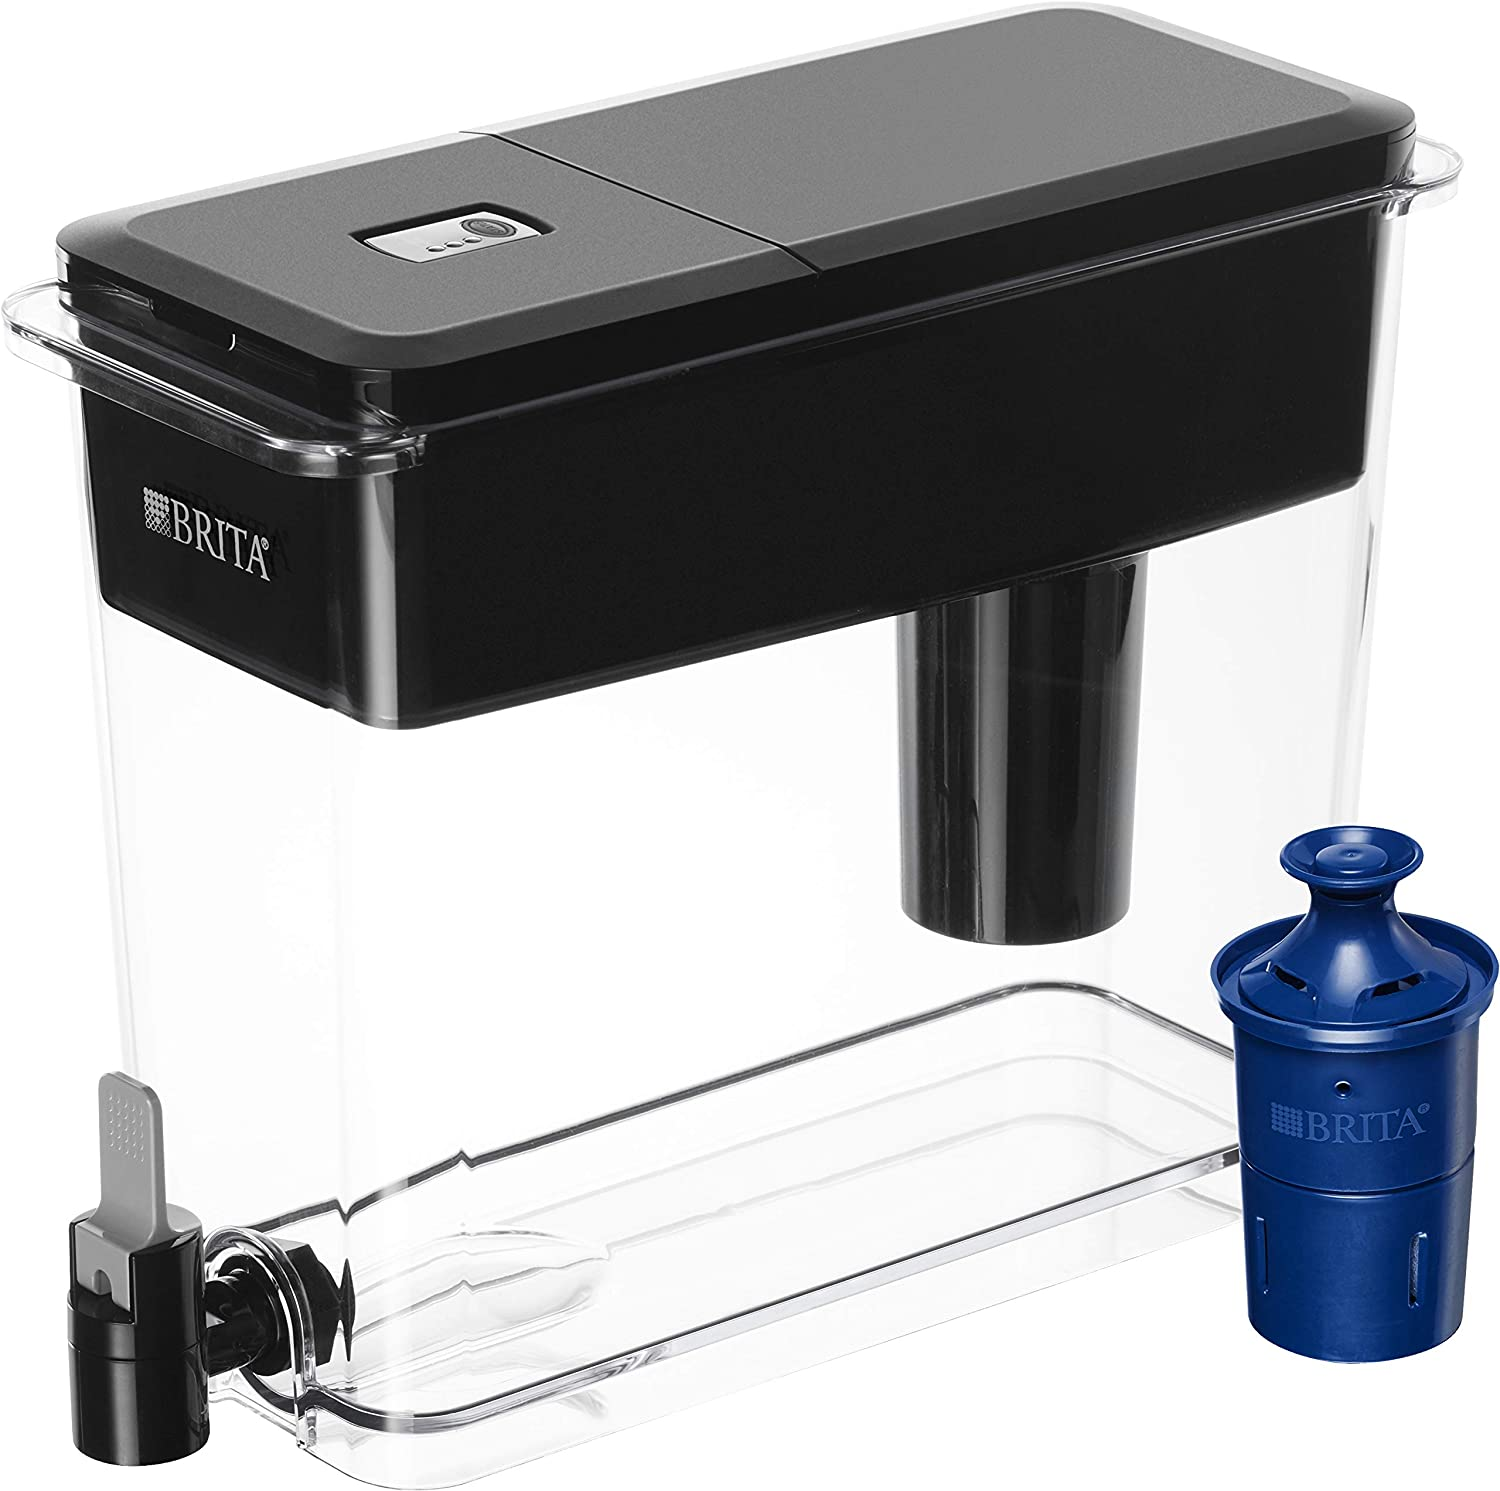 The Best water filter dispenser - Our pick